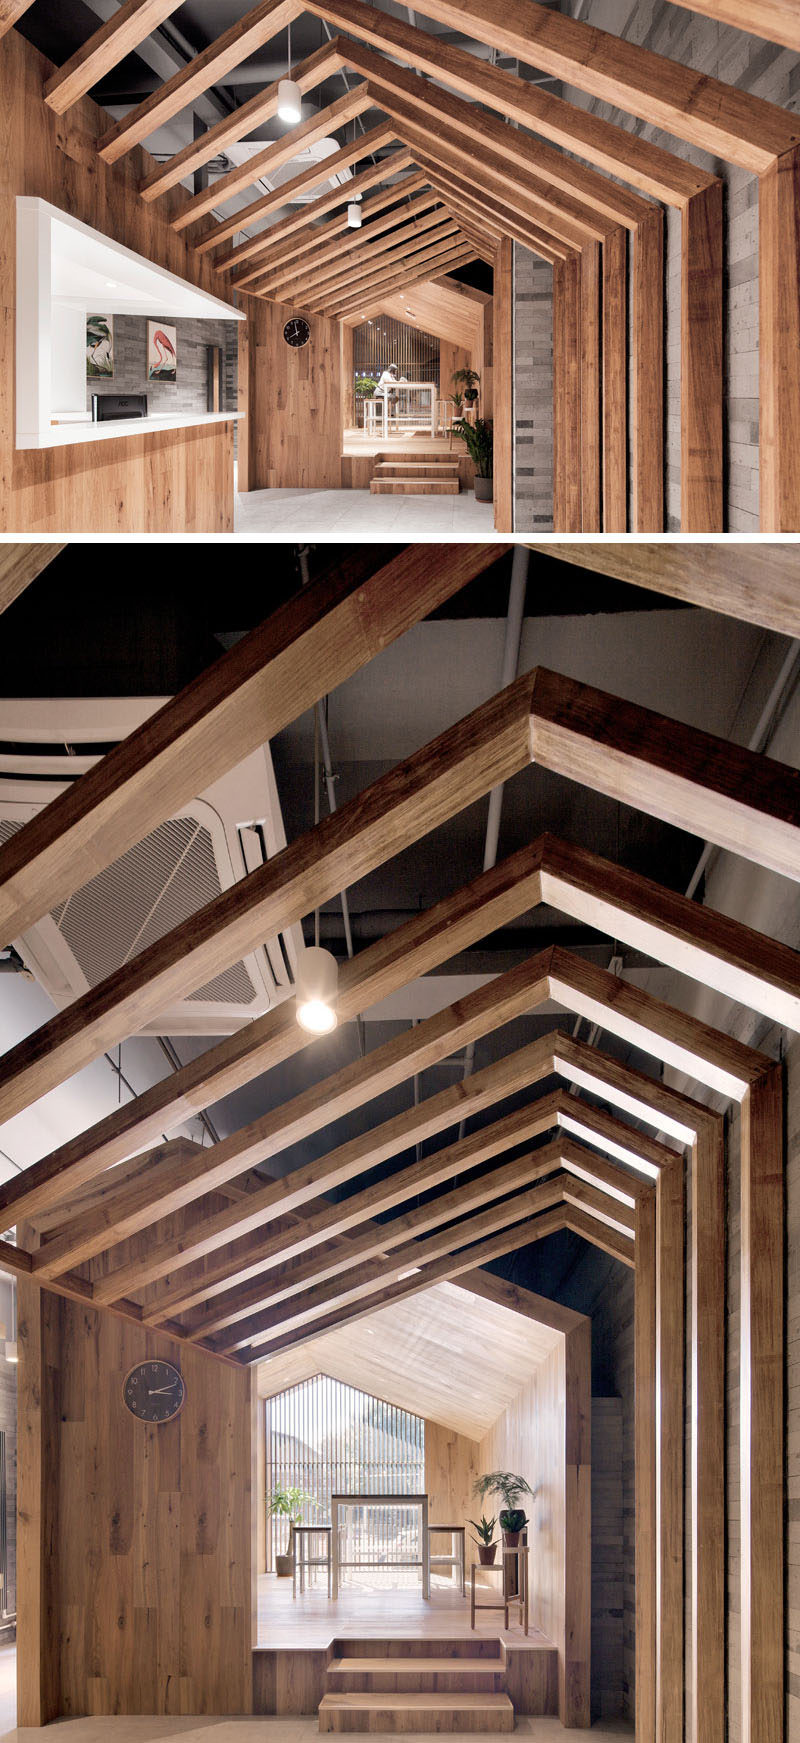 Wood and bricks are used throughout this modern hotel to create a sense of alleyways and separate spaces. #ModernHotel #HotelDesign #Wood